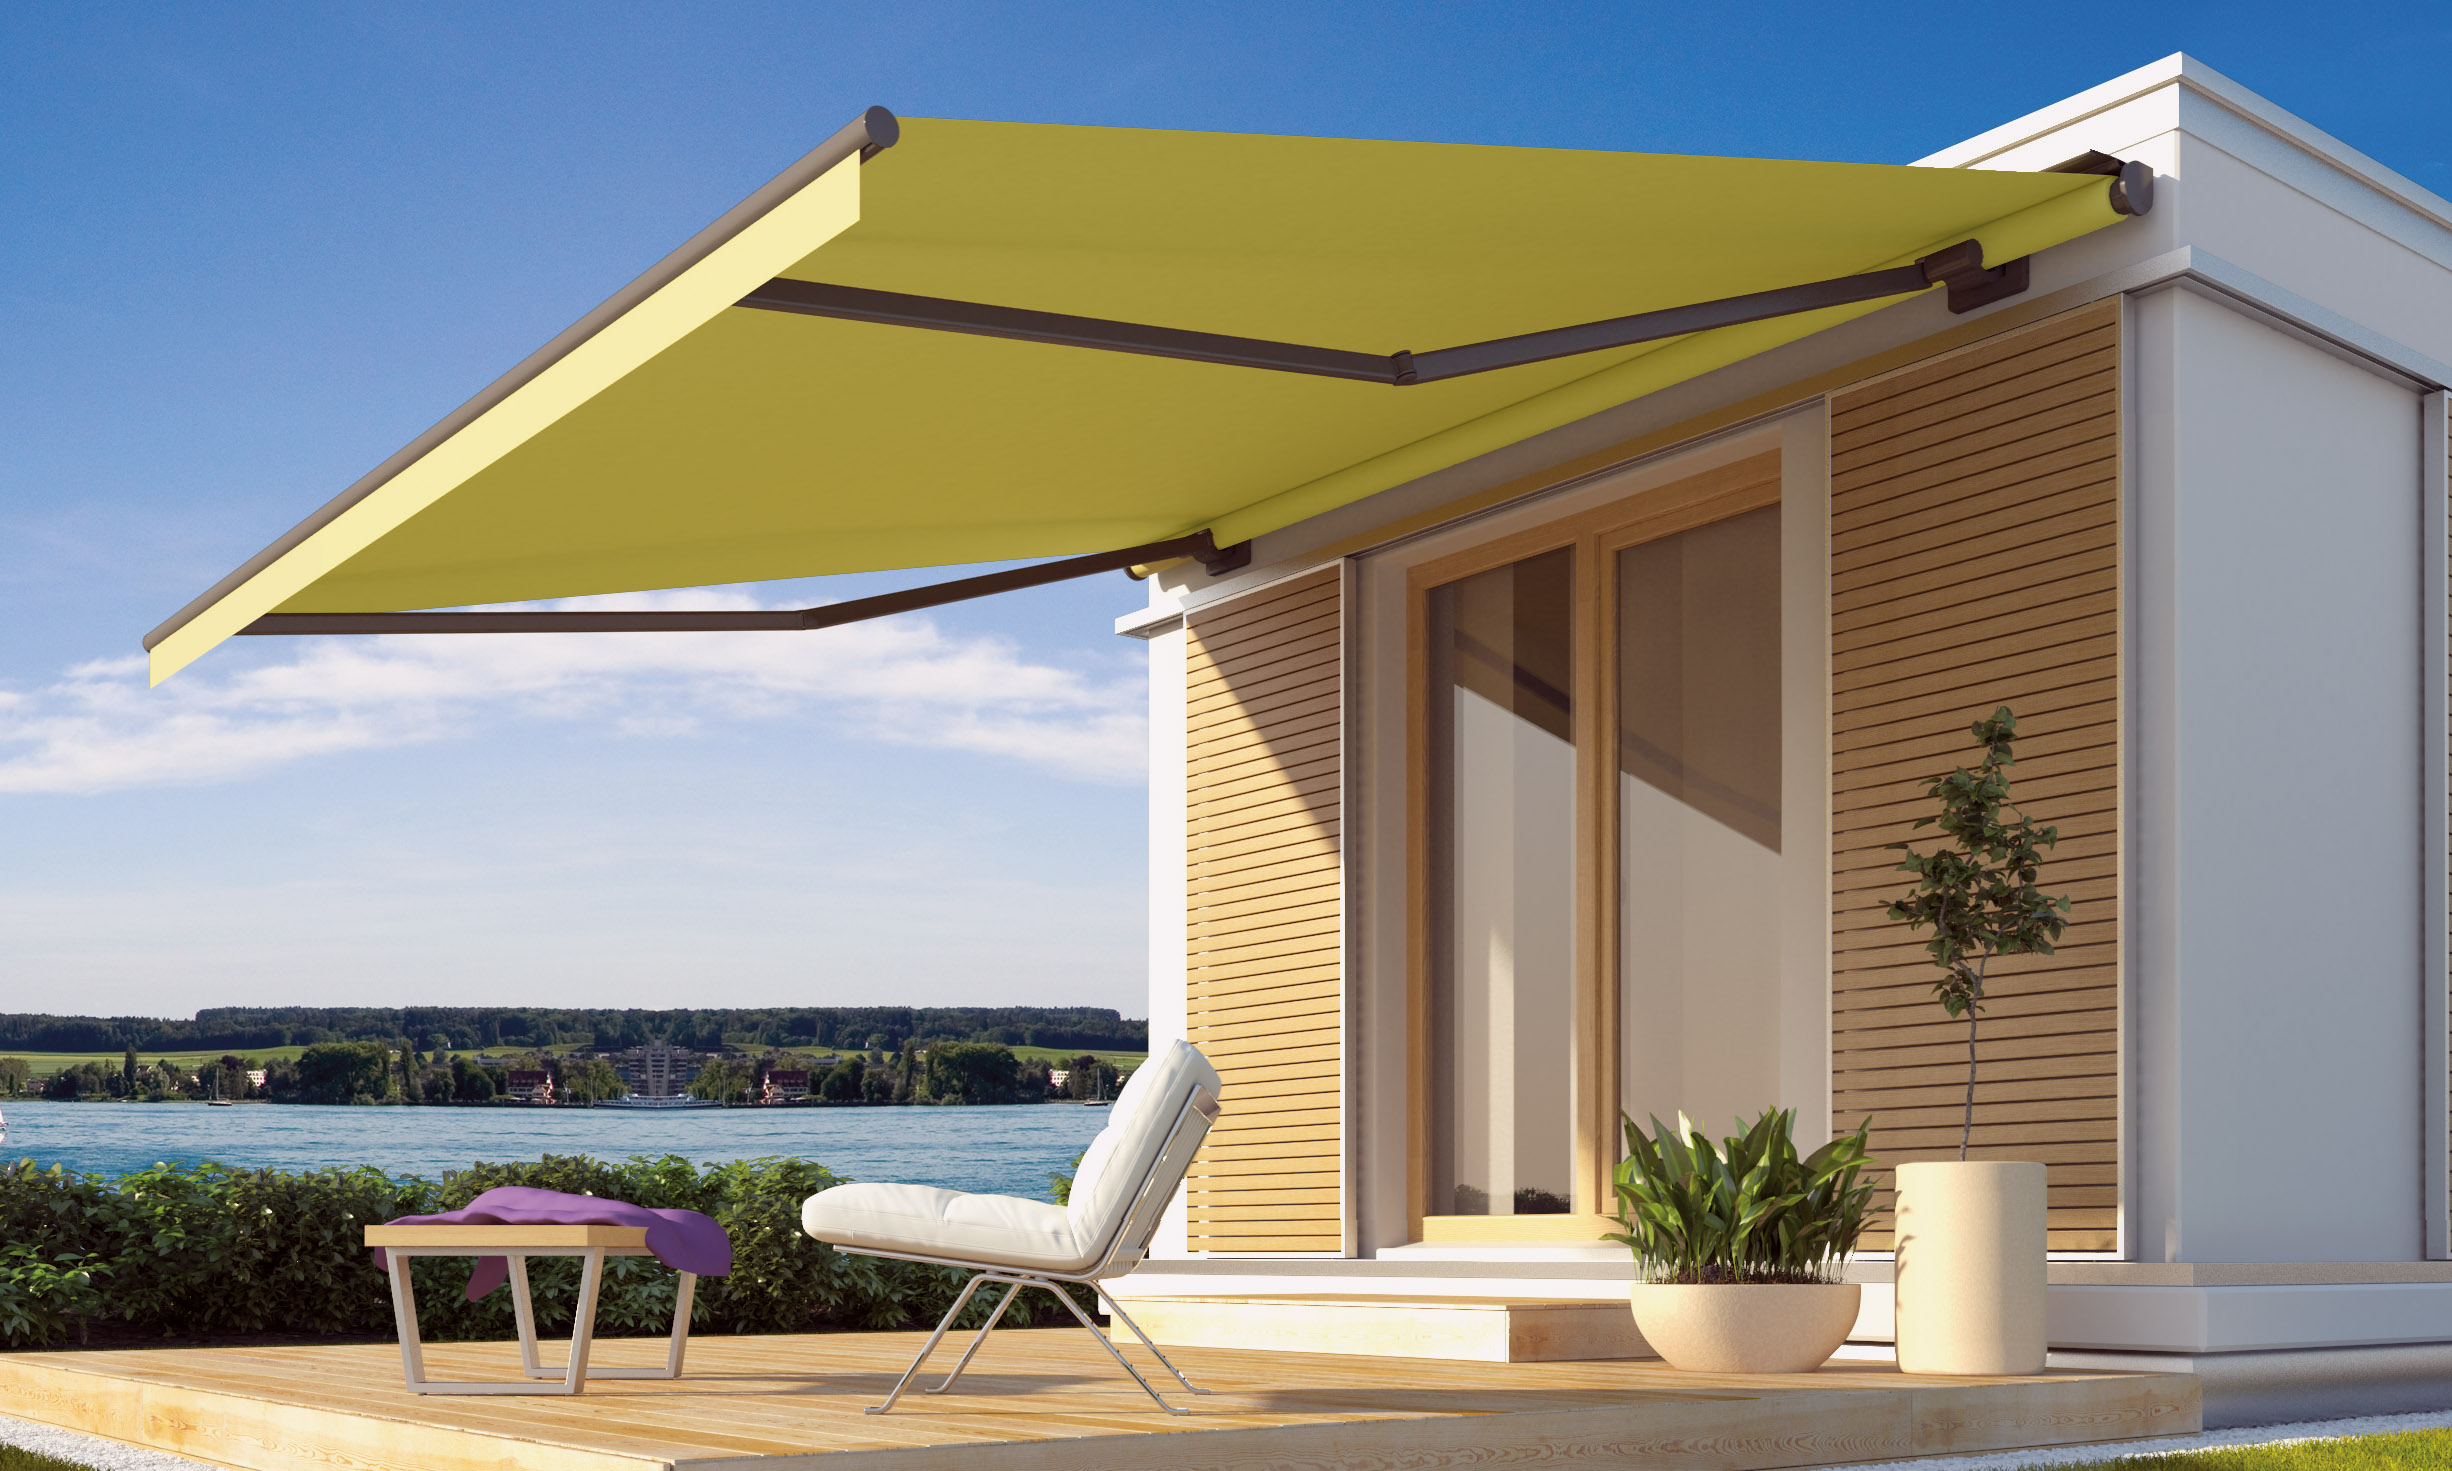 The Livona awning on a beach house